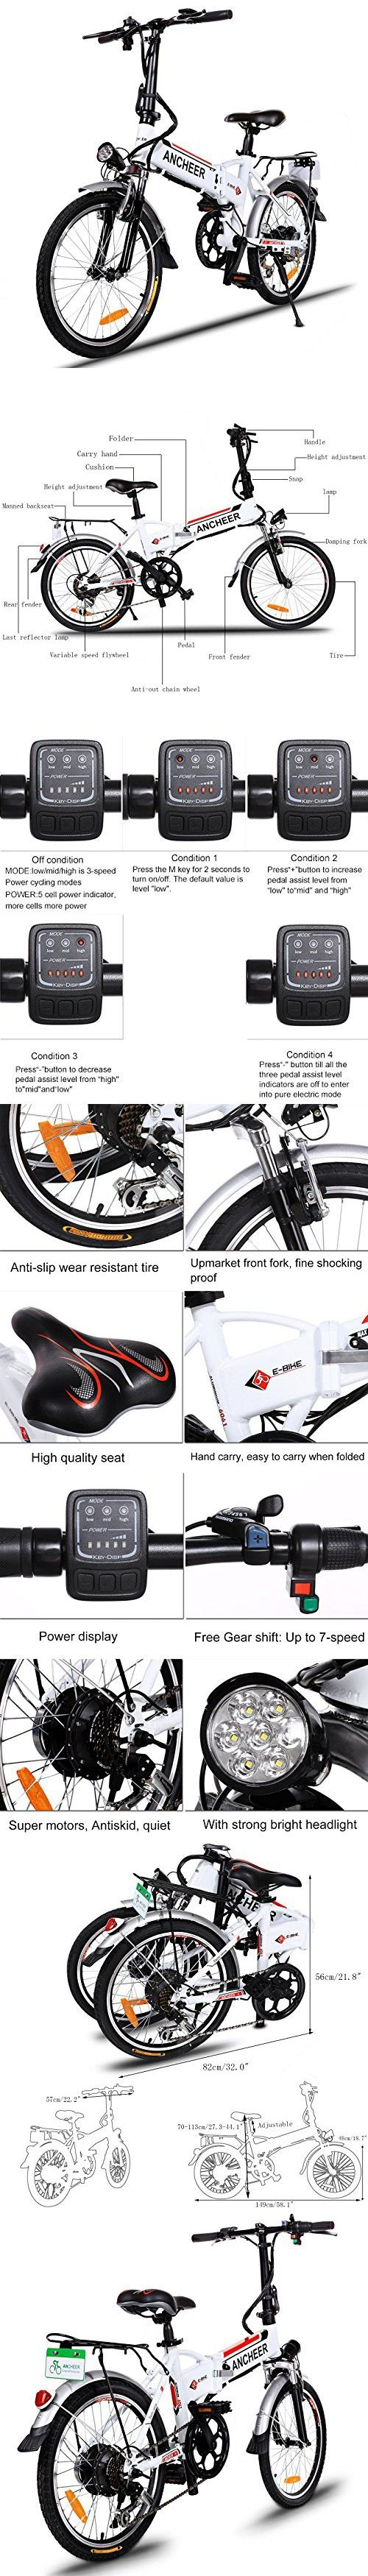 Ancheer Folding Electric Bike with Removable Lithium-Ion Battery and Battery Charger